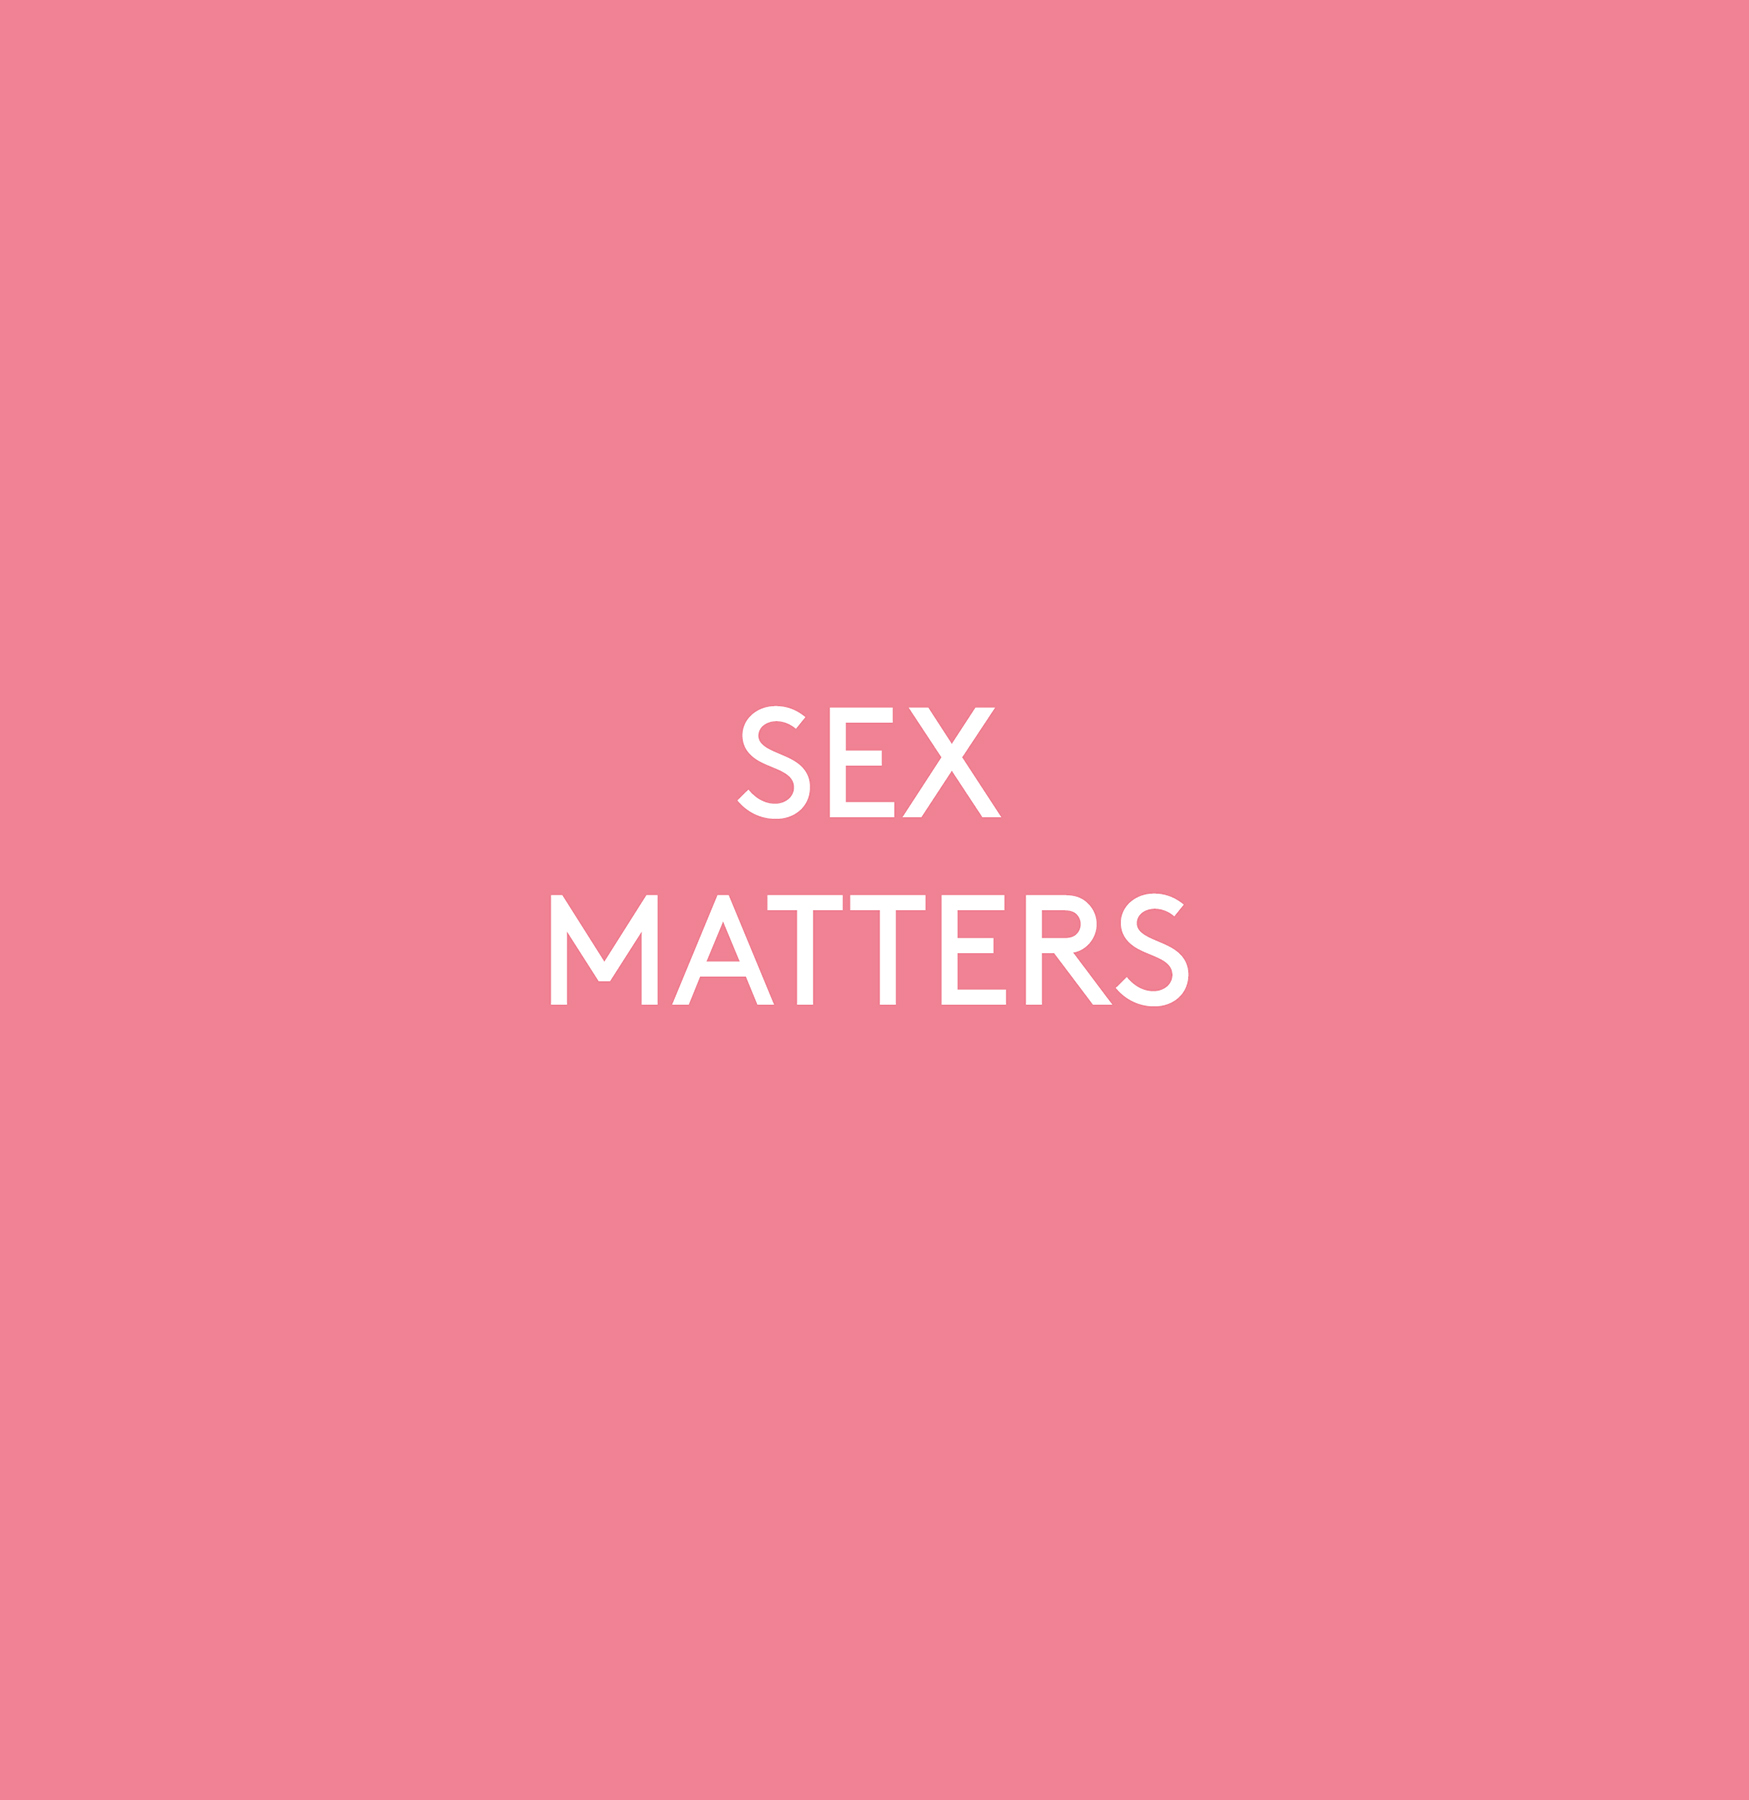 Yes, Sex Matters